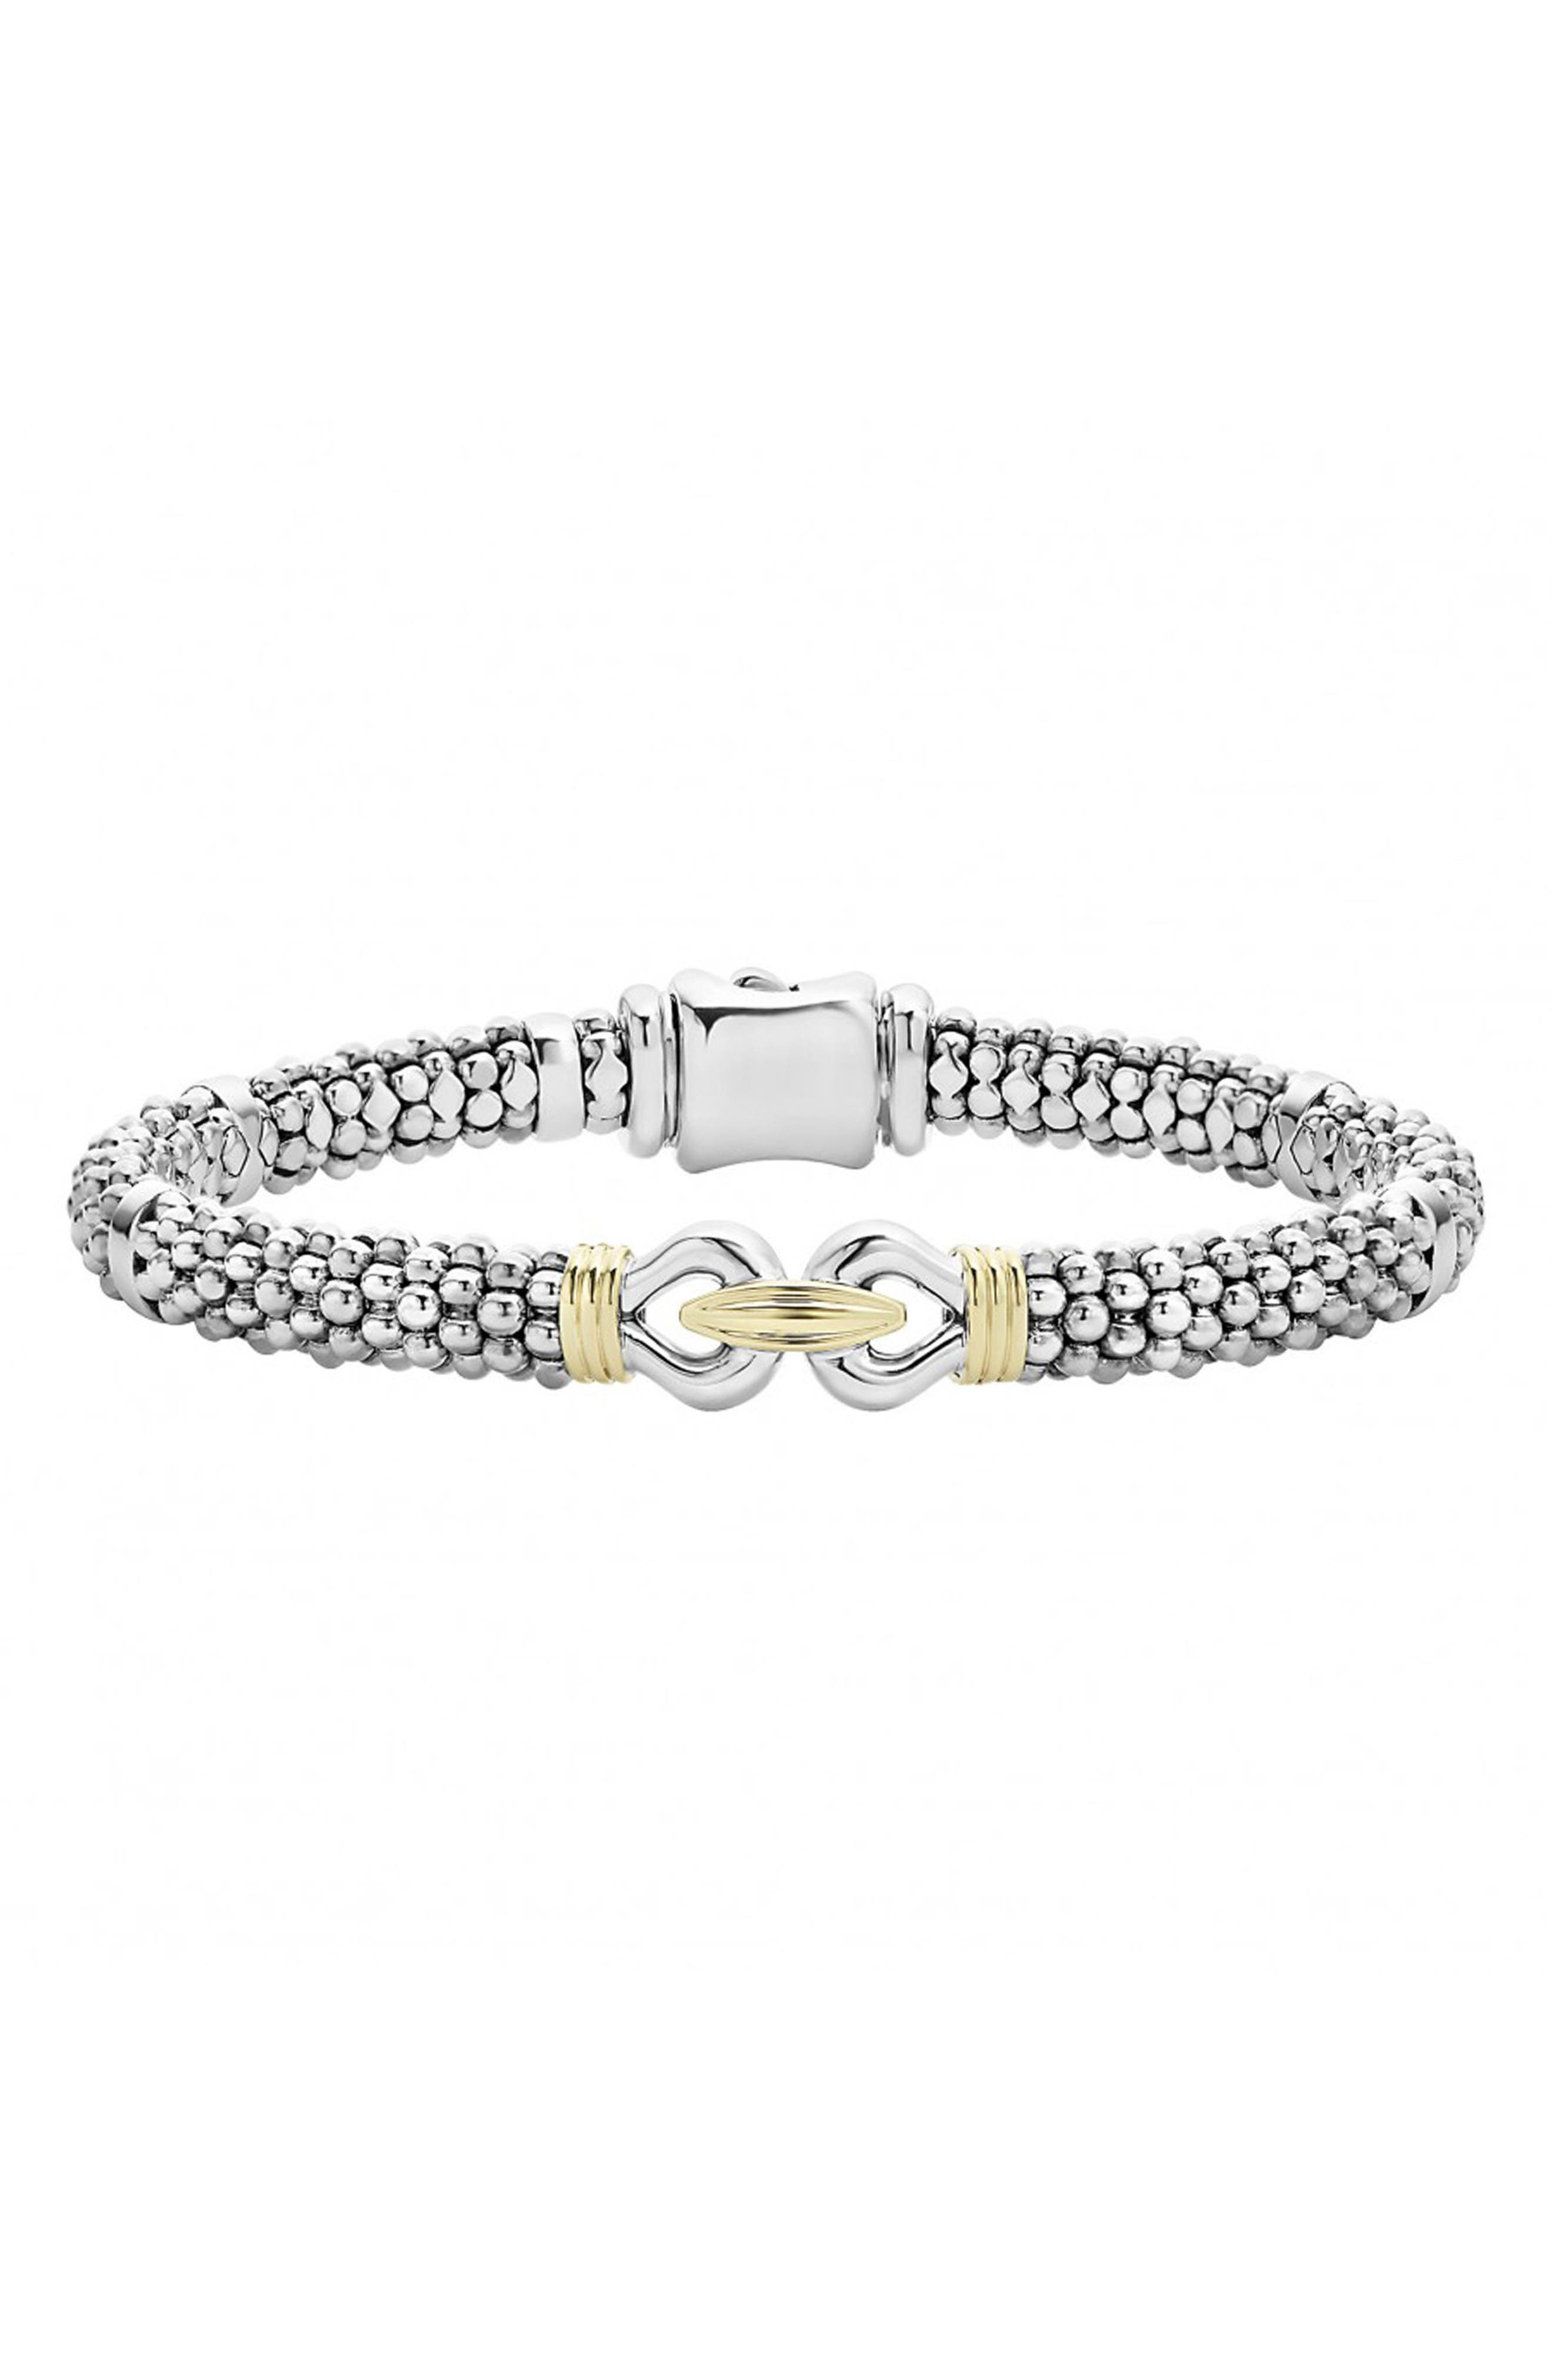 'Derby' Fluted Two Tone Rope Bracelet,                             Alternate thumbnail 2, color,                             SILVER/ GOLD